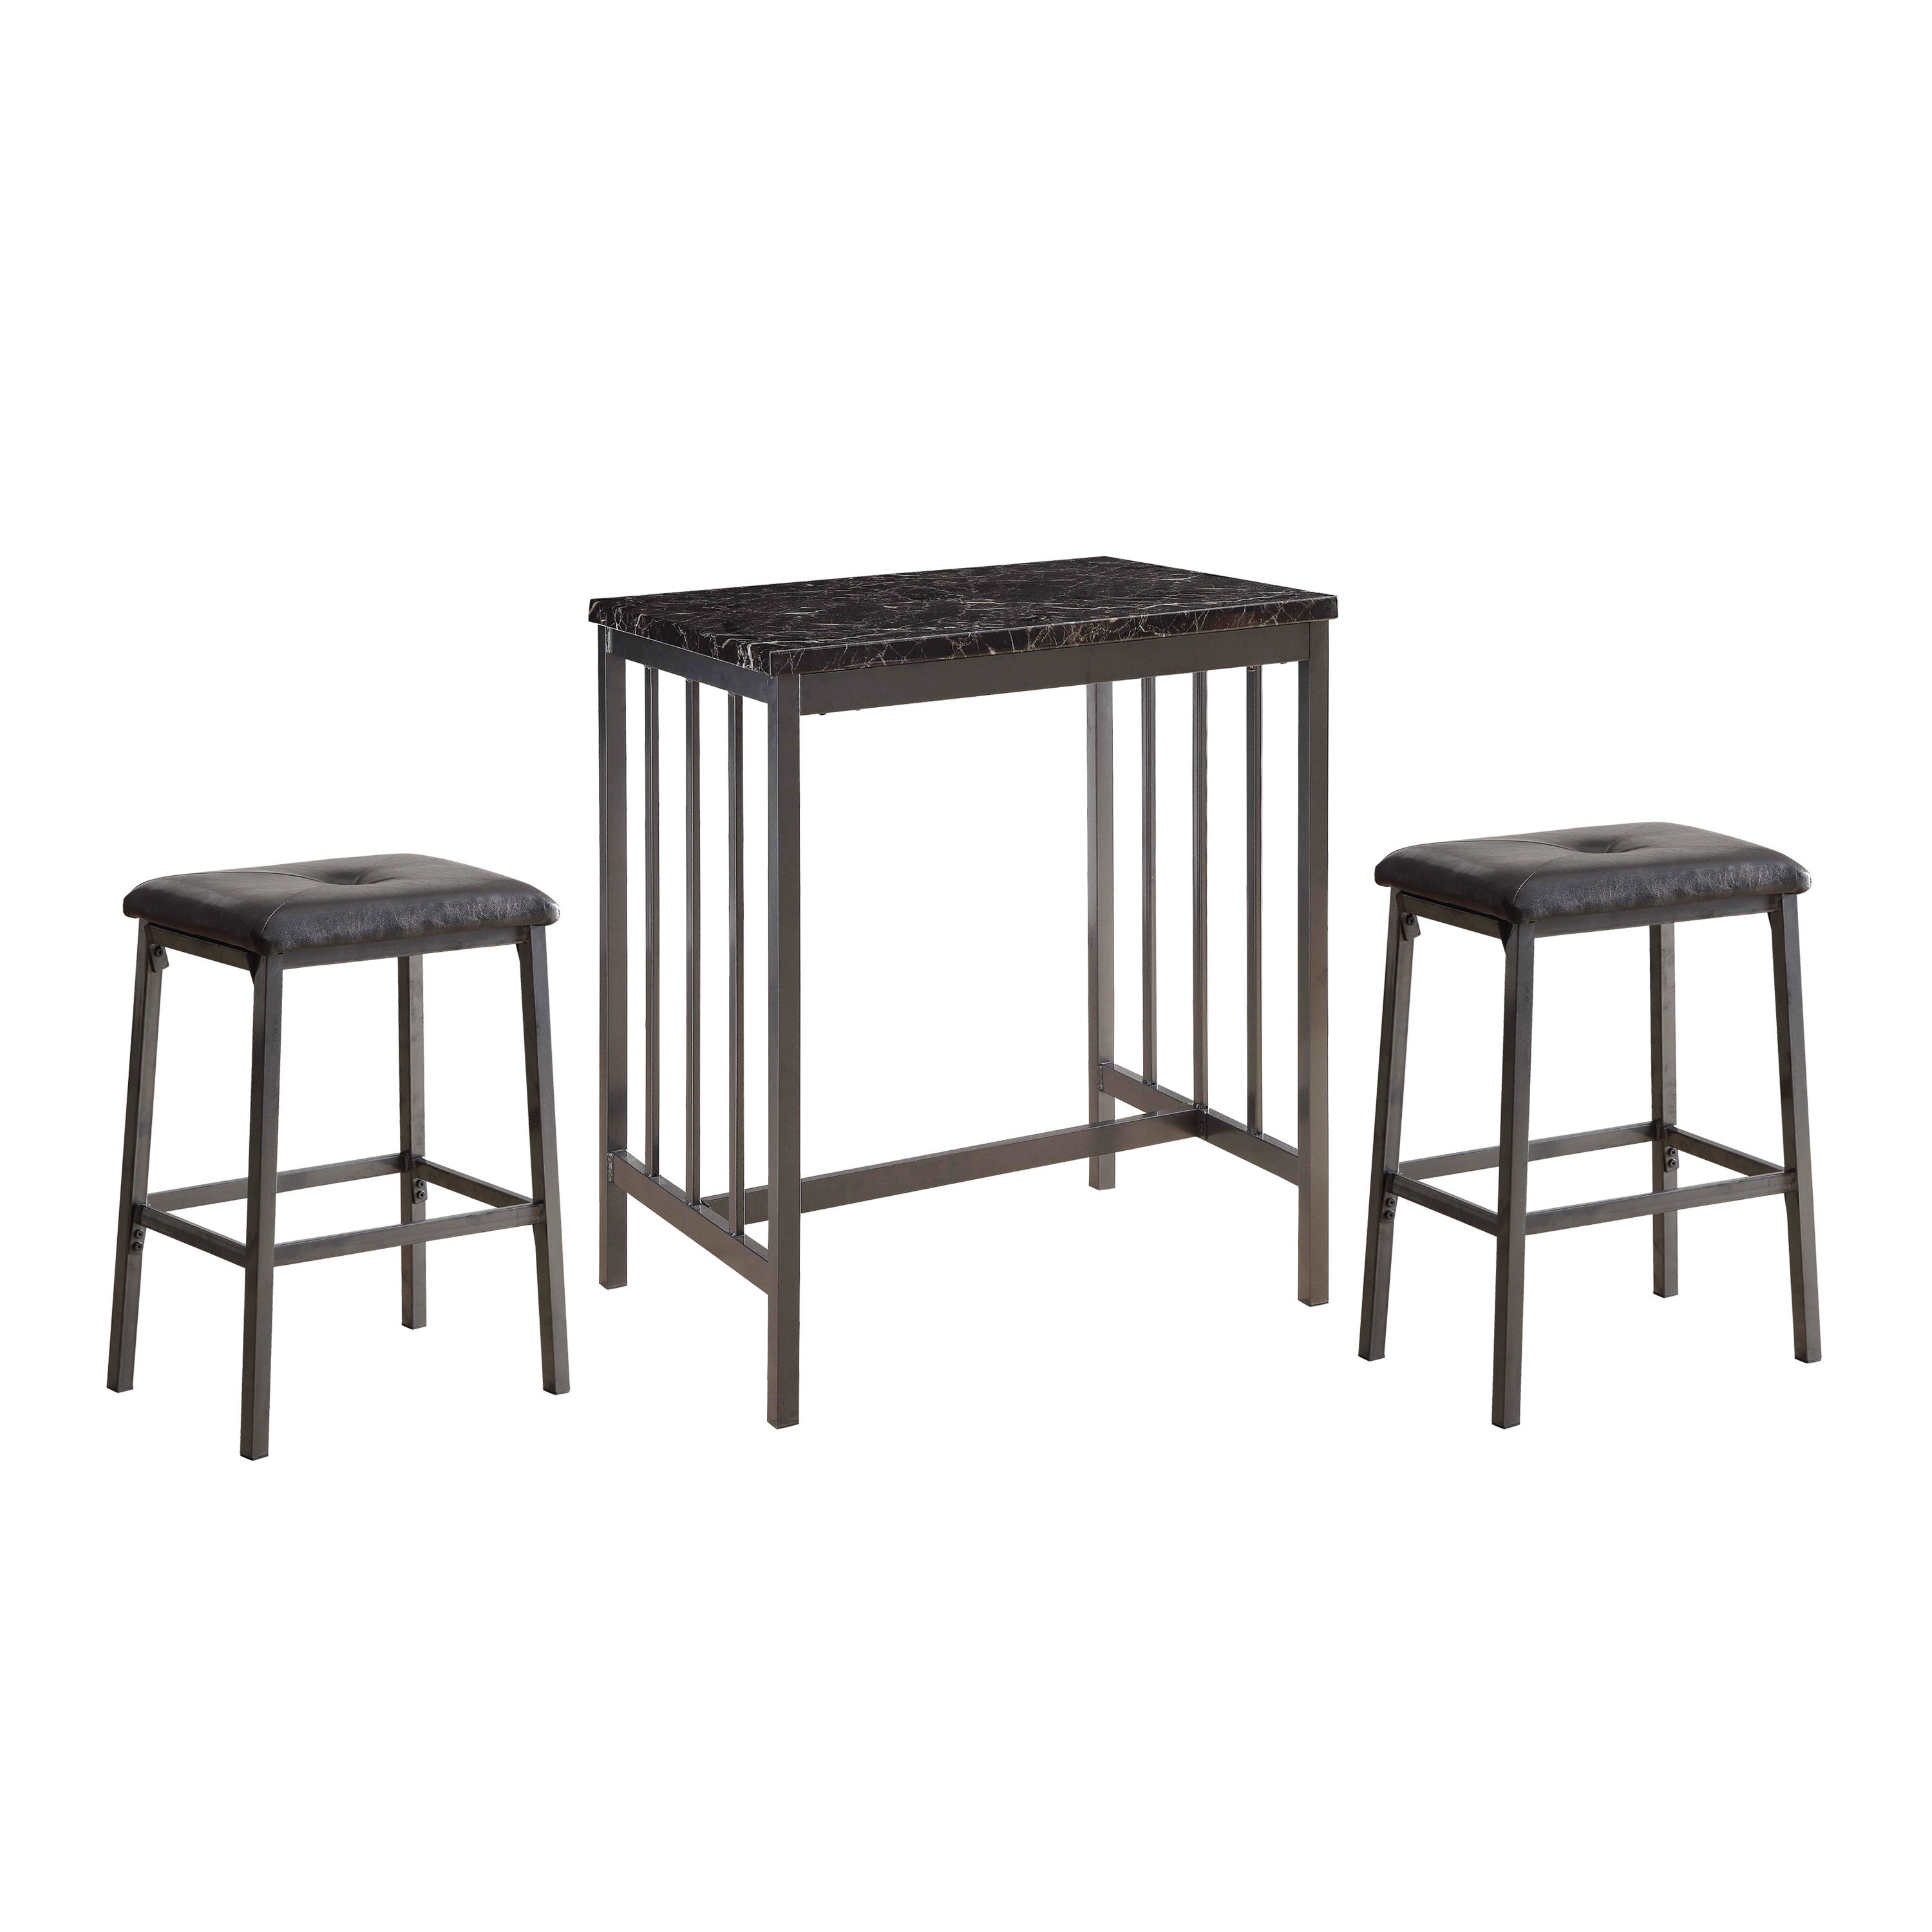 Current Askern 3 Piece Counter Height Dining Sets (Set Of 3) For Winston Porter Acme Venator 3 Pieces Pack Counter Height Set In Grey (View 8 of 25)